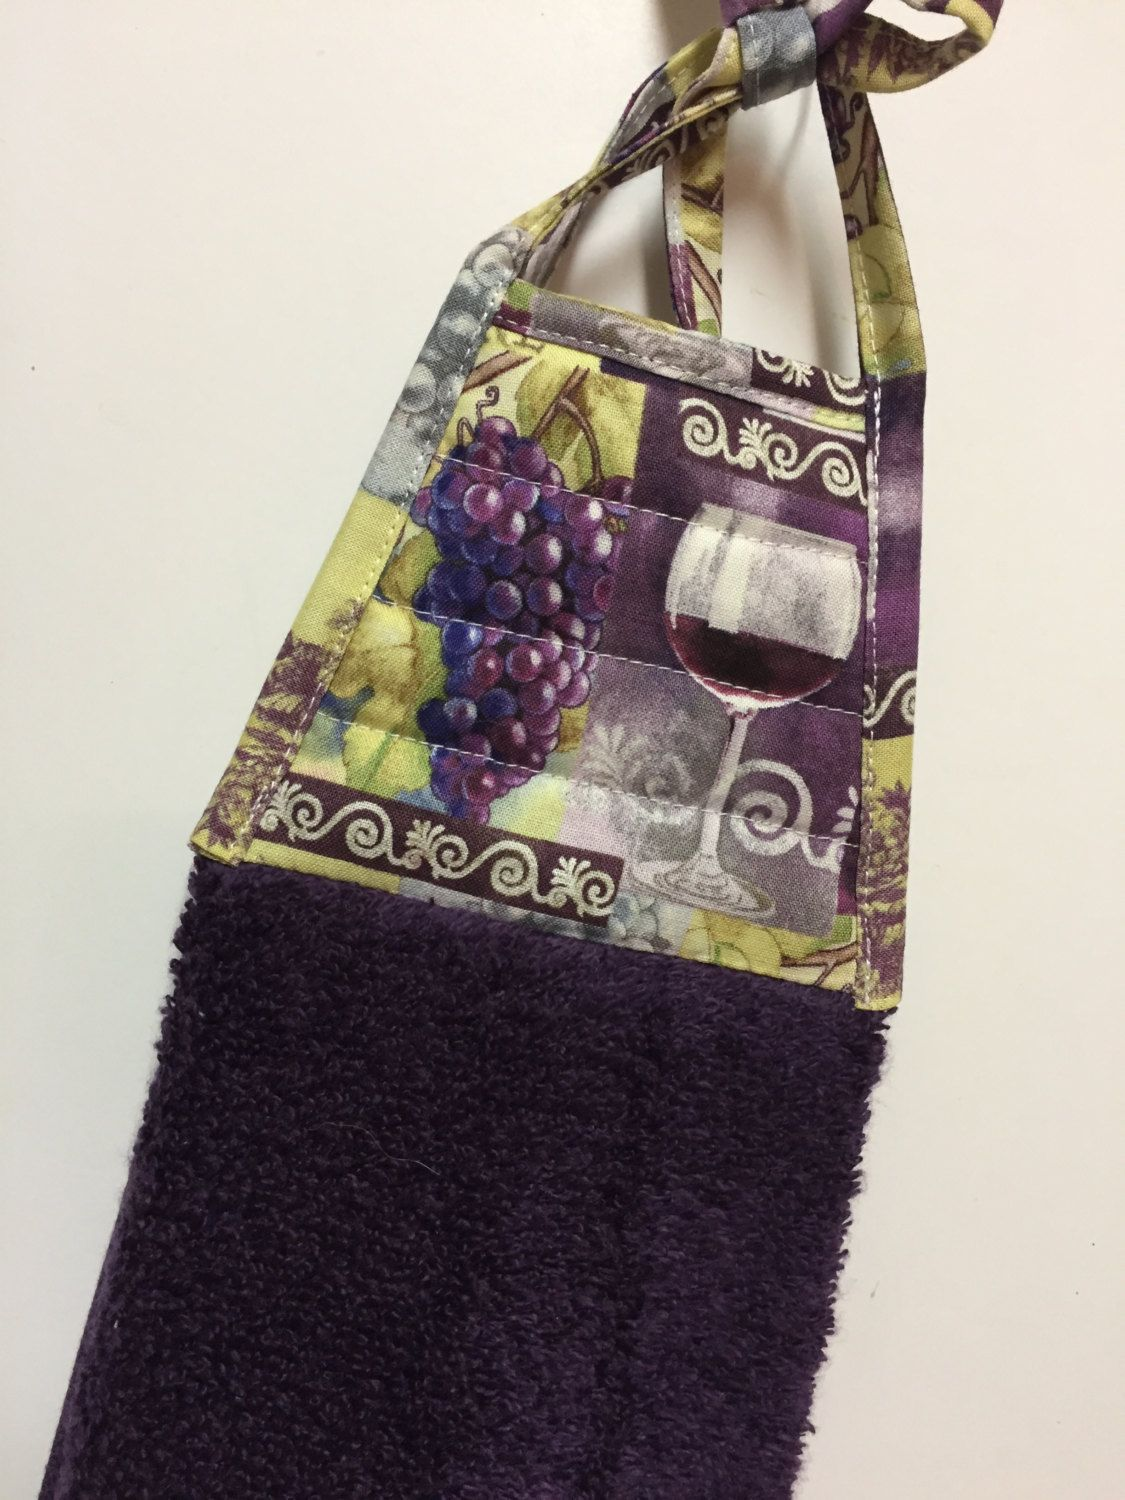 Wine And Grapes  Grapes Kitchen Towel   Wine Kitchen Towel  Grapes Kitchen  Accessories  Wine Tea Towel  Purple Towel  Hostess Gift  Mom Gift